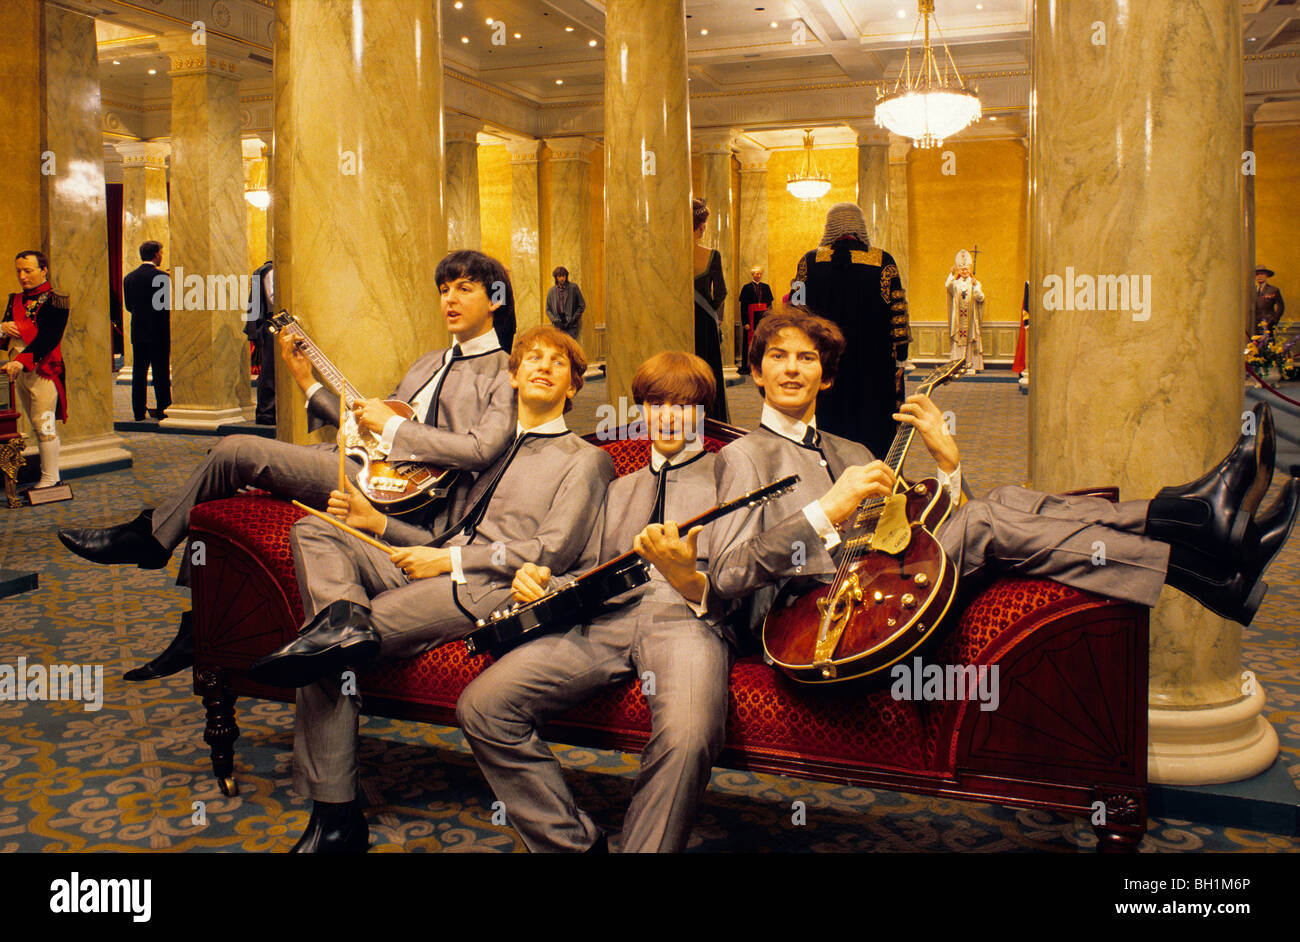 Europe, Great Britain, England, London, Madame Tussauds, The Beatles - Stock Image